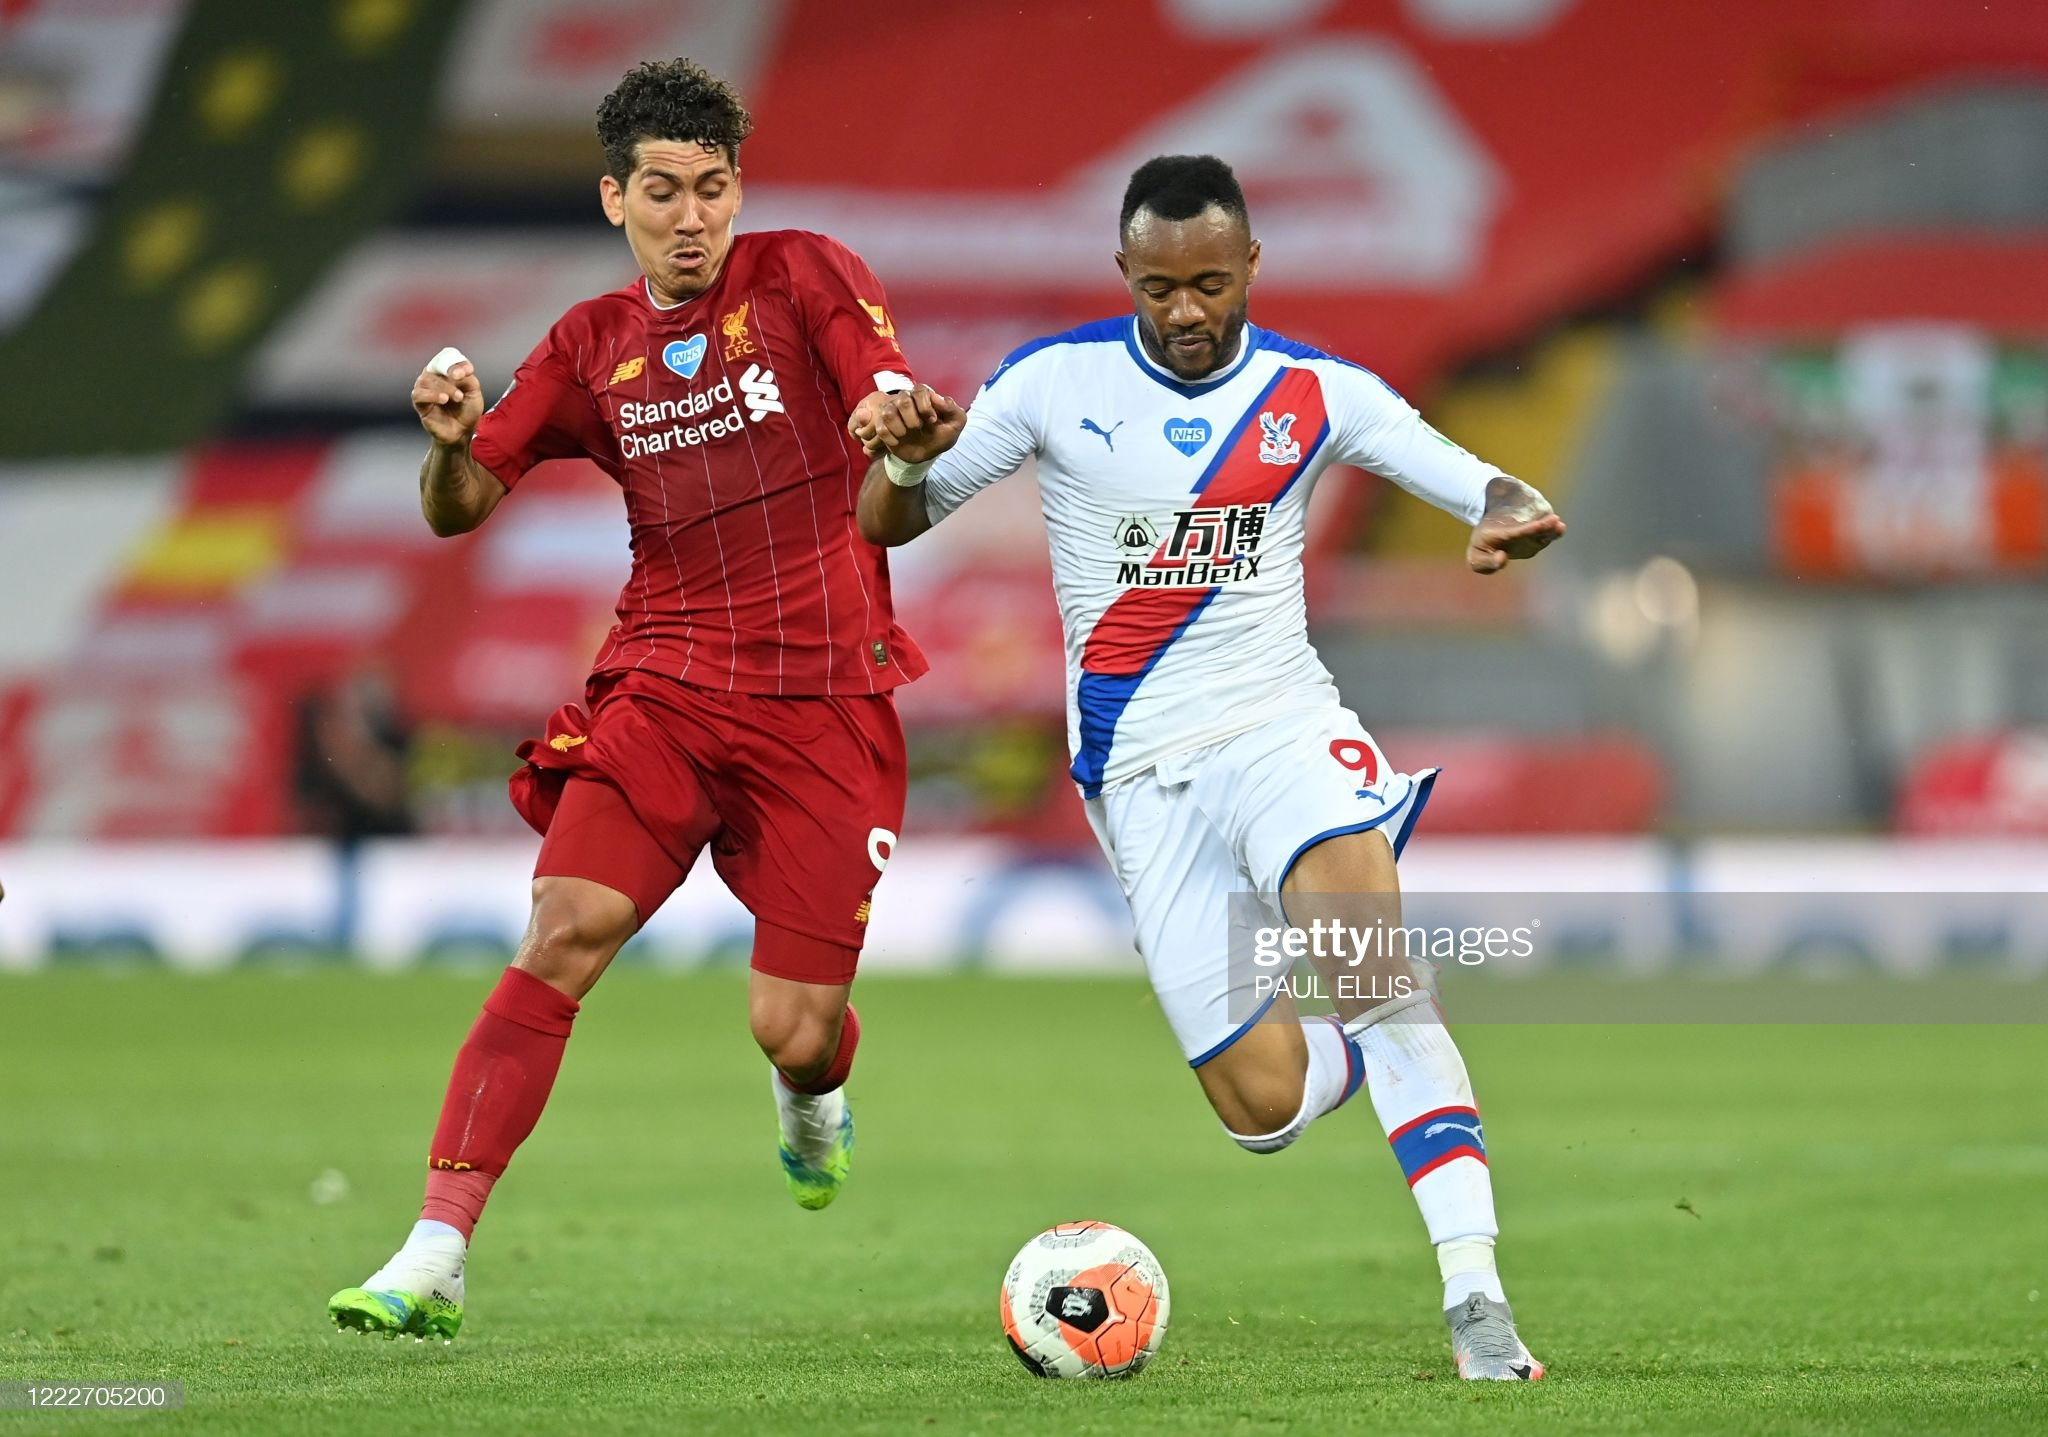 Crystal Palace vs Liverpool preview, prediction and odds